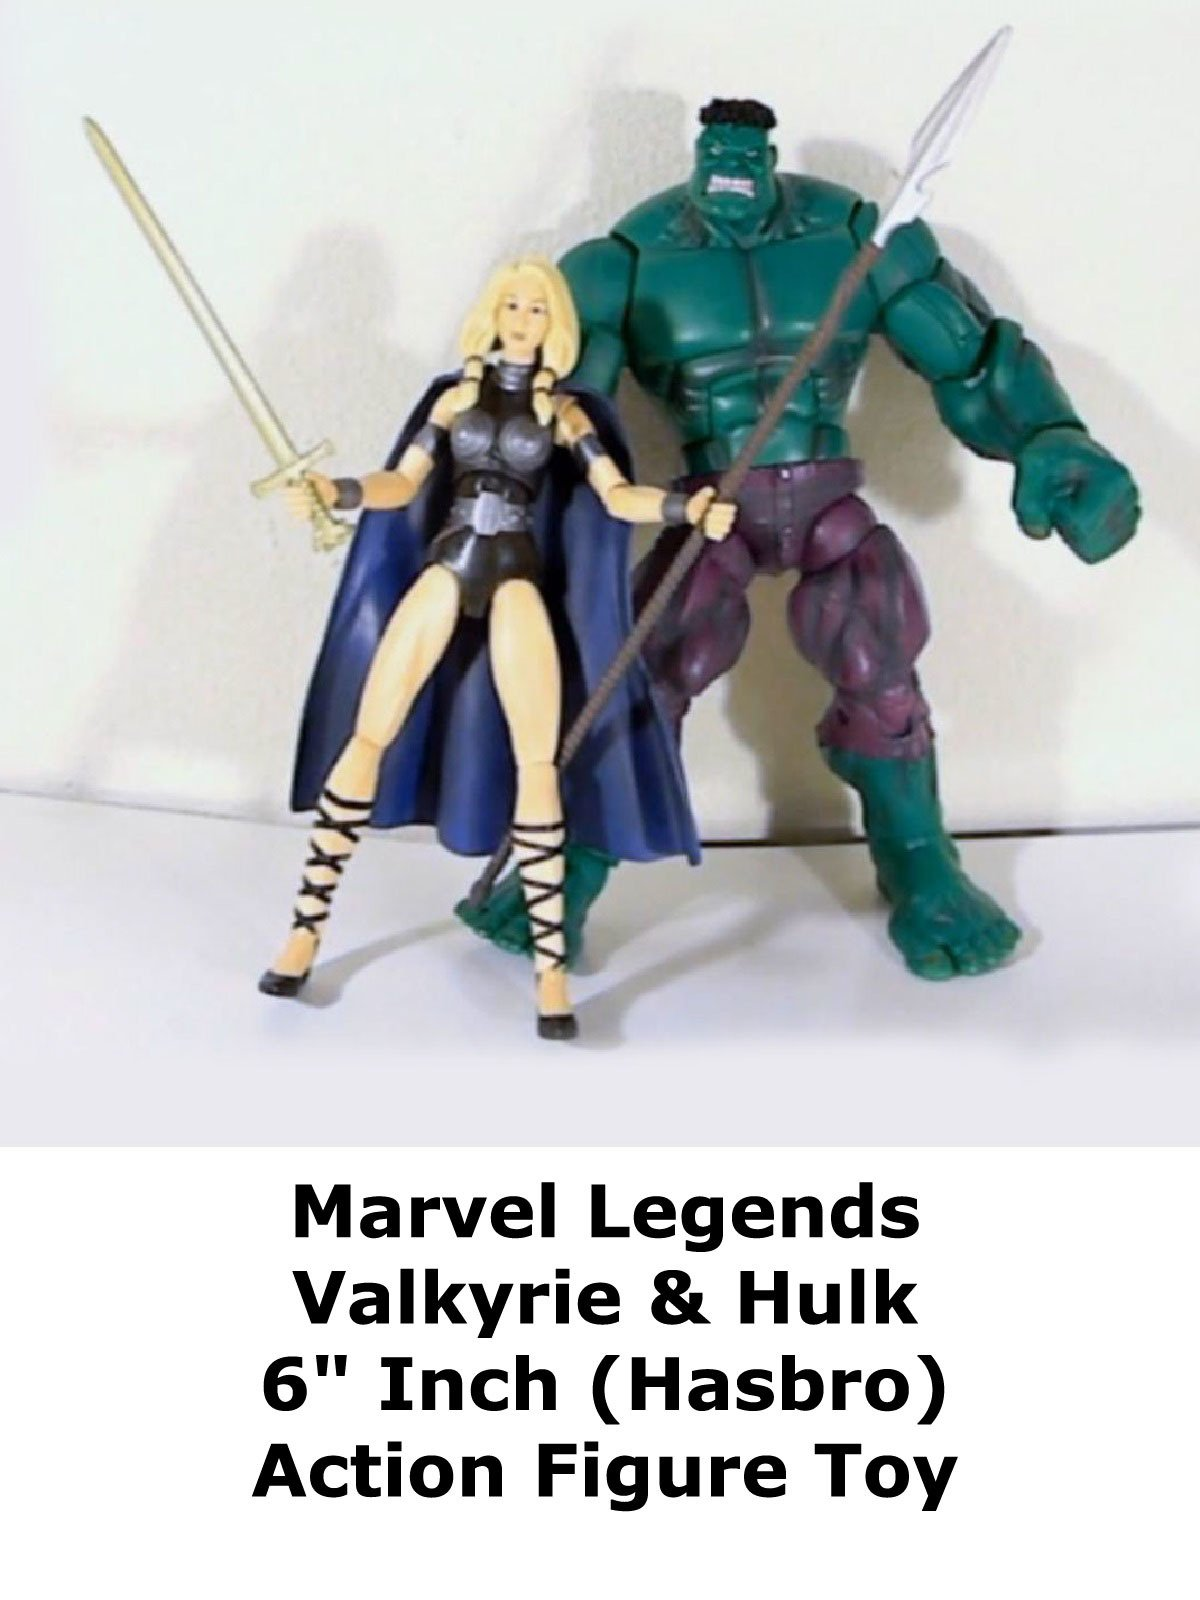 "Review: Marvel Legends Valkyrie & Hulk 6"" Inch (Hasbro) Action Figure Toy"